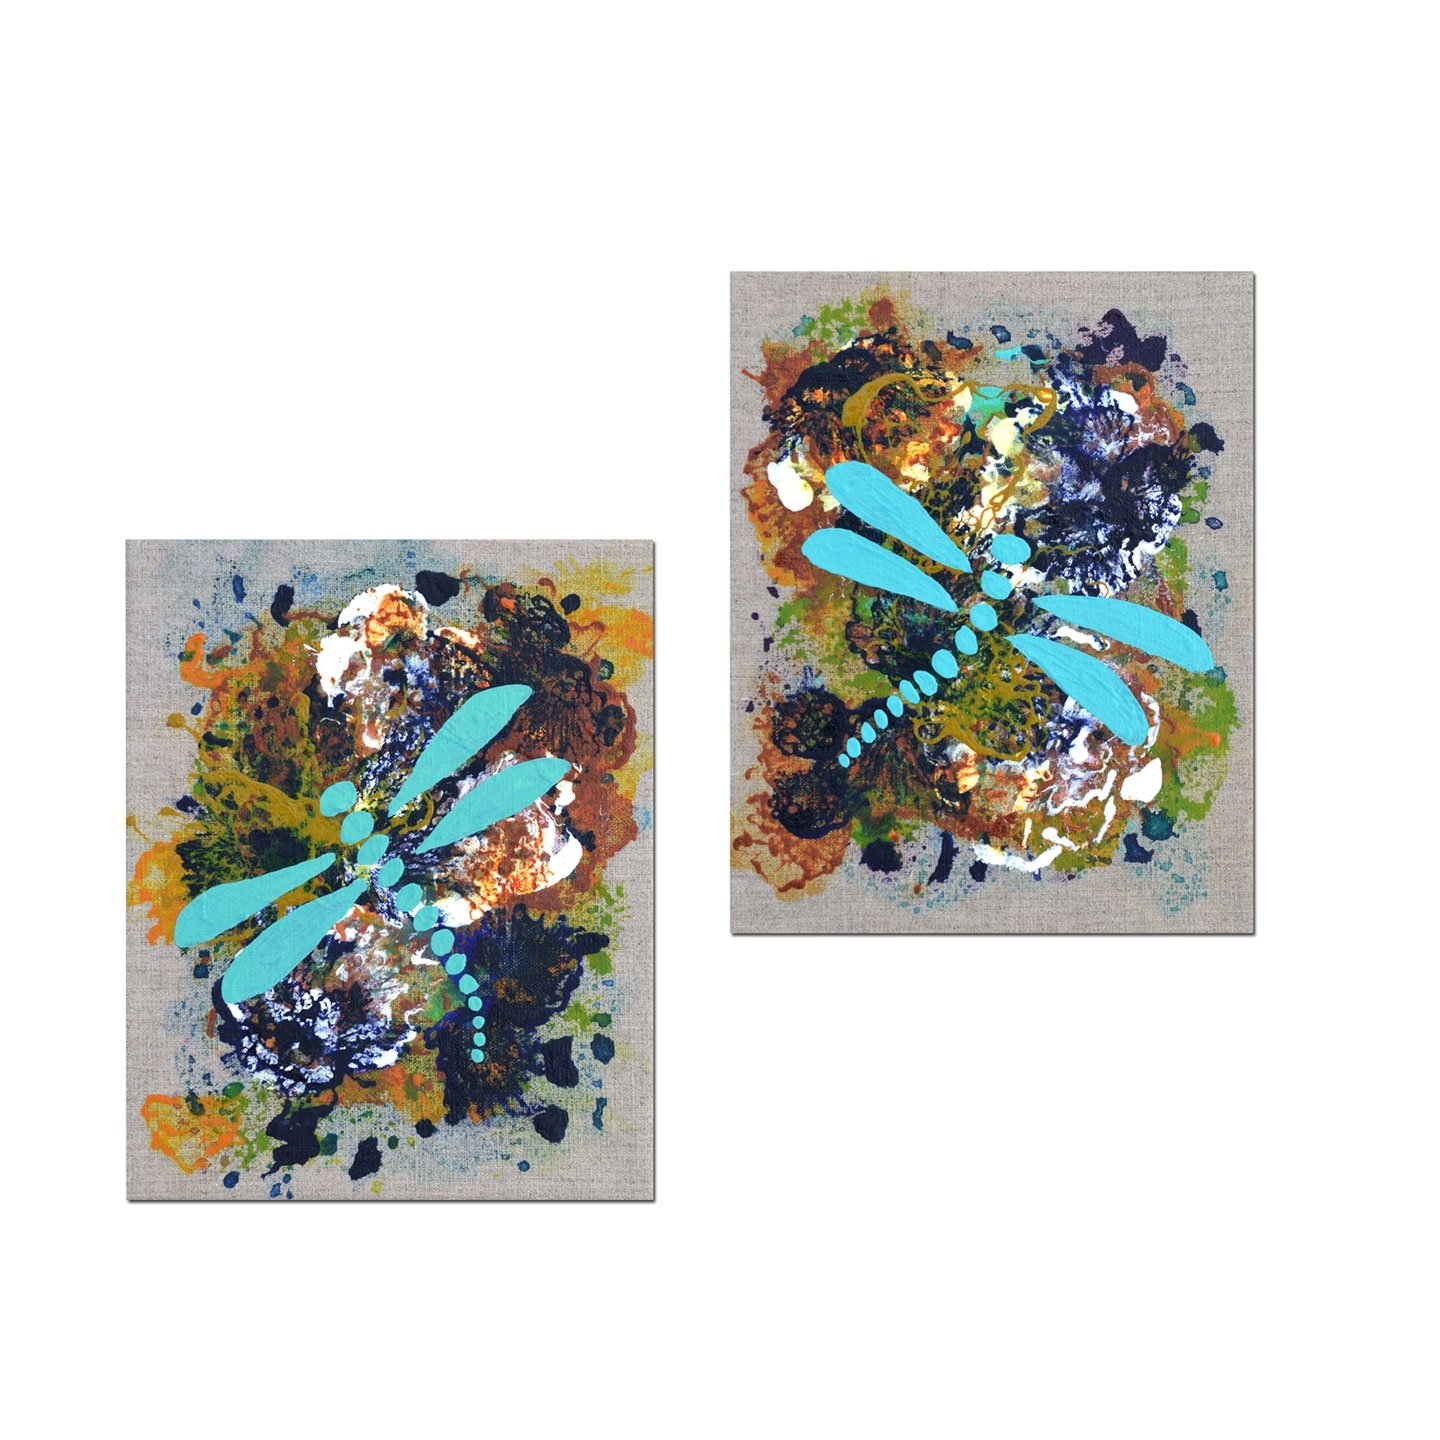 Home Decor Art: The Versatility Of Diptych Paintings With Regard To Recent Dragonfly Painting Wall Art (View 11 of 20)